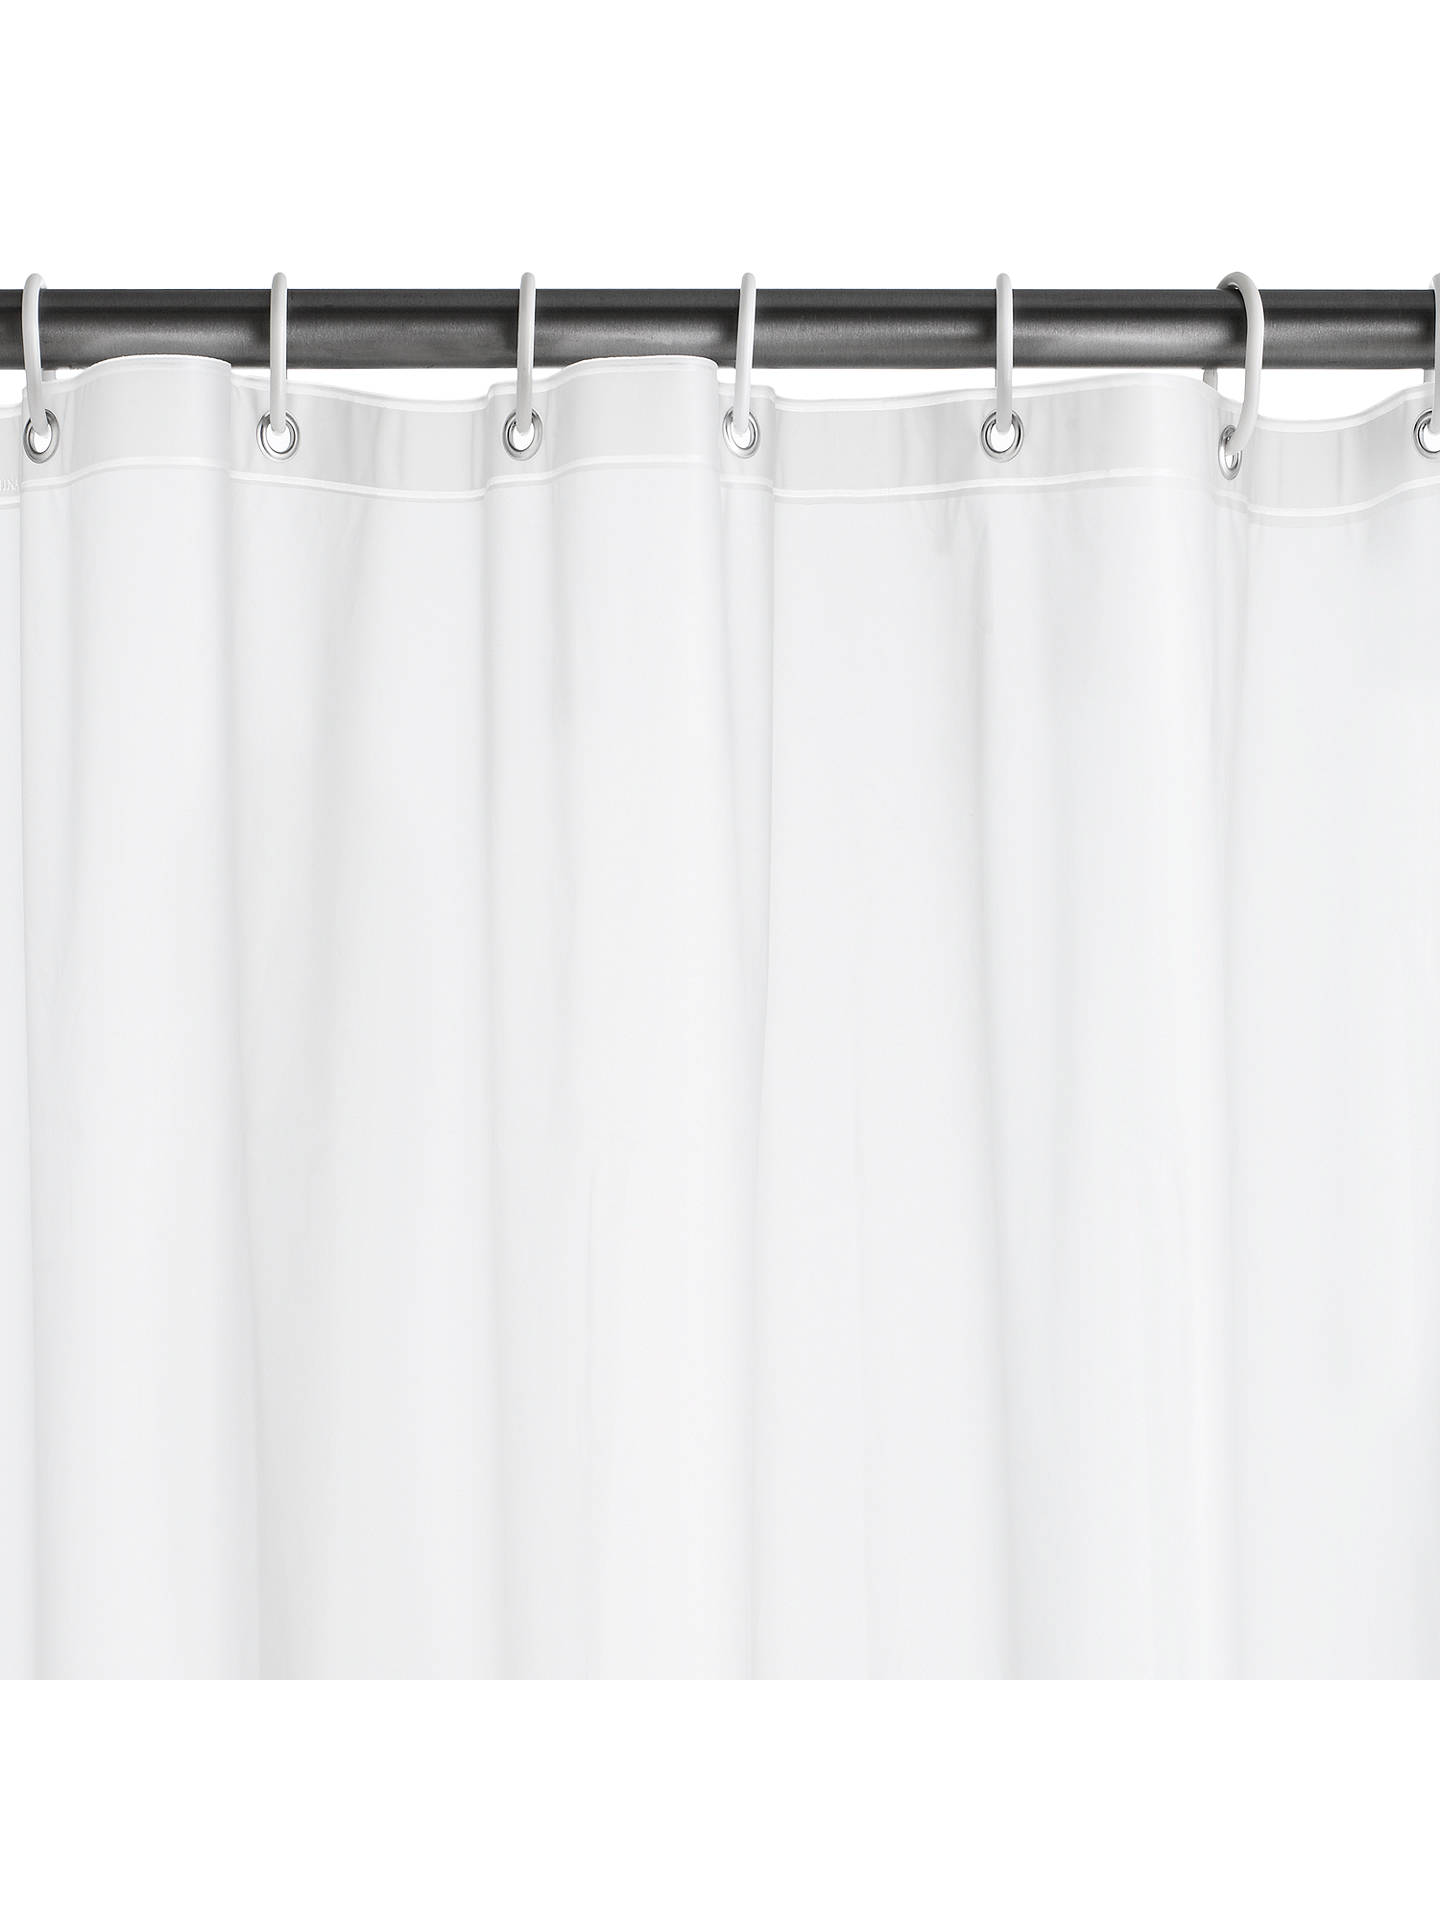 BuyJohn Lewis PEVA Shower Curtain Liner Clear Online At Johnlewis